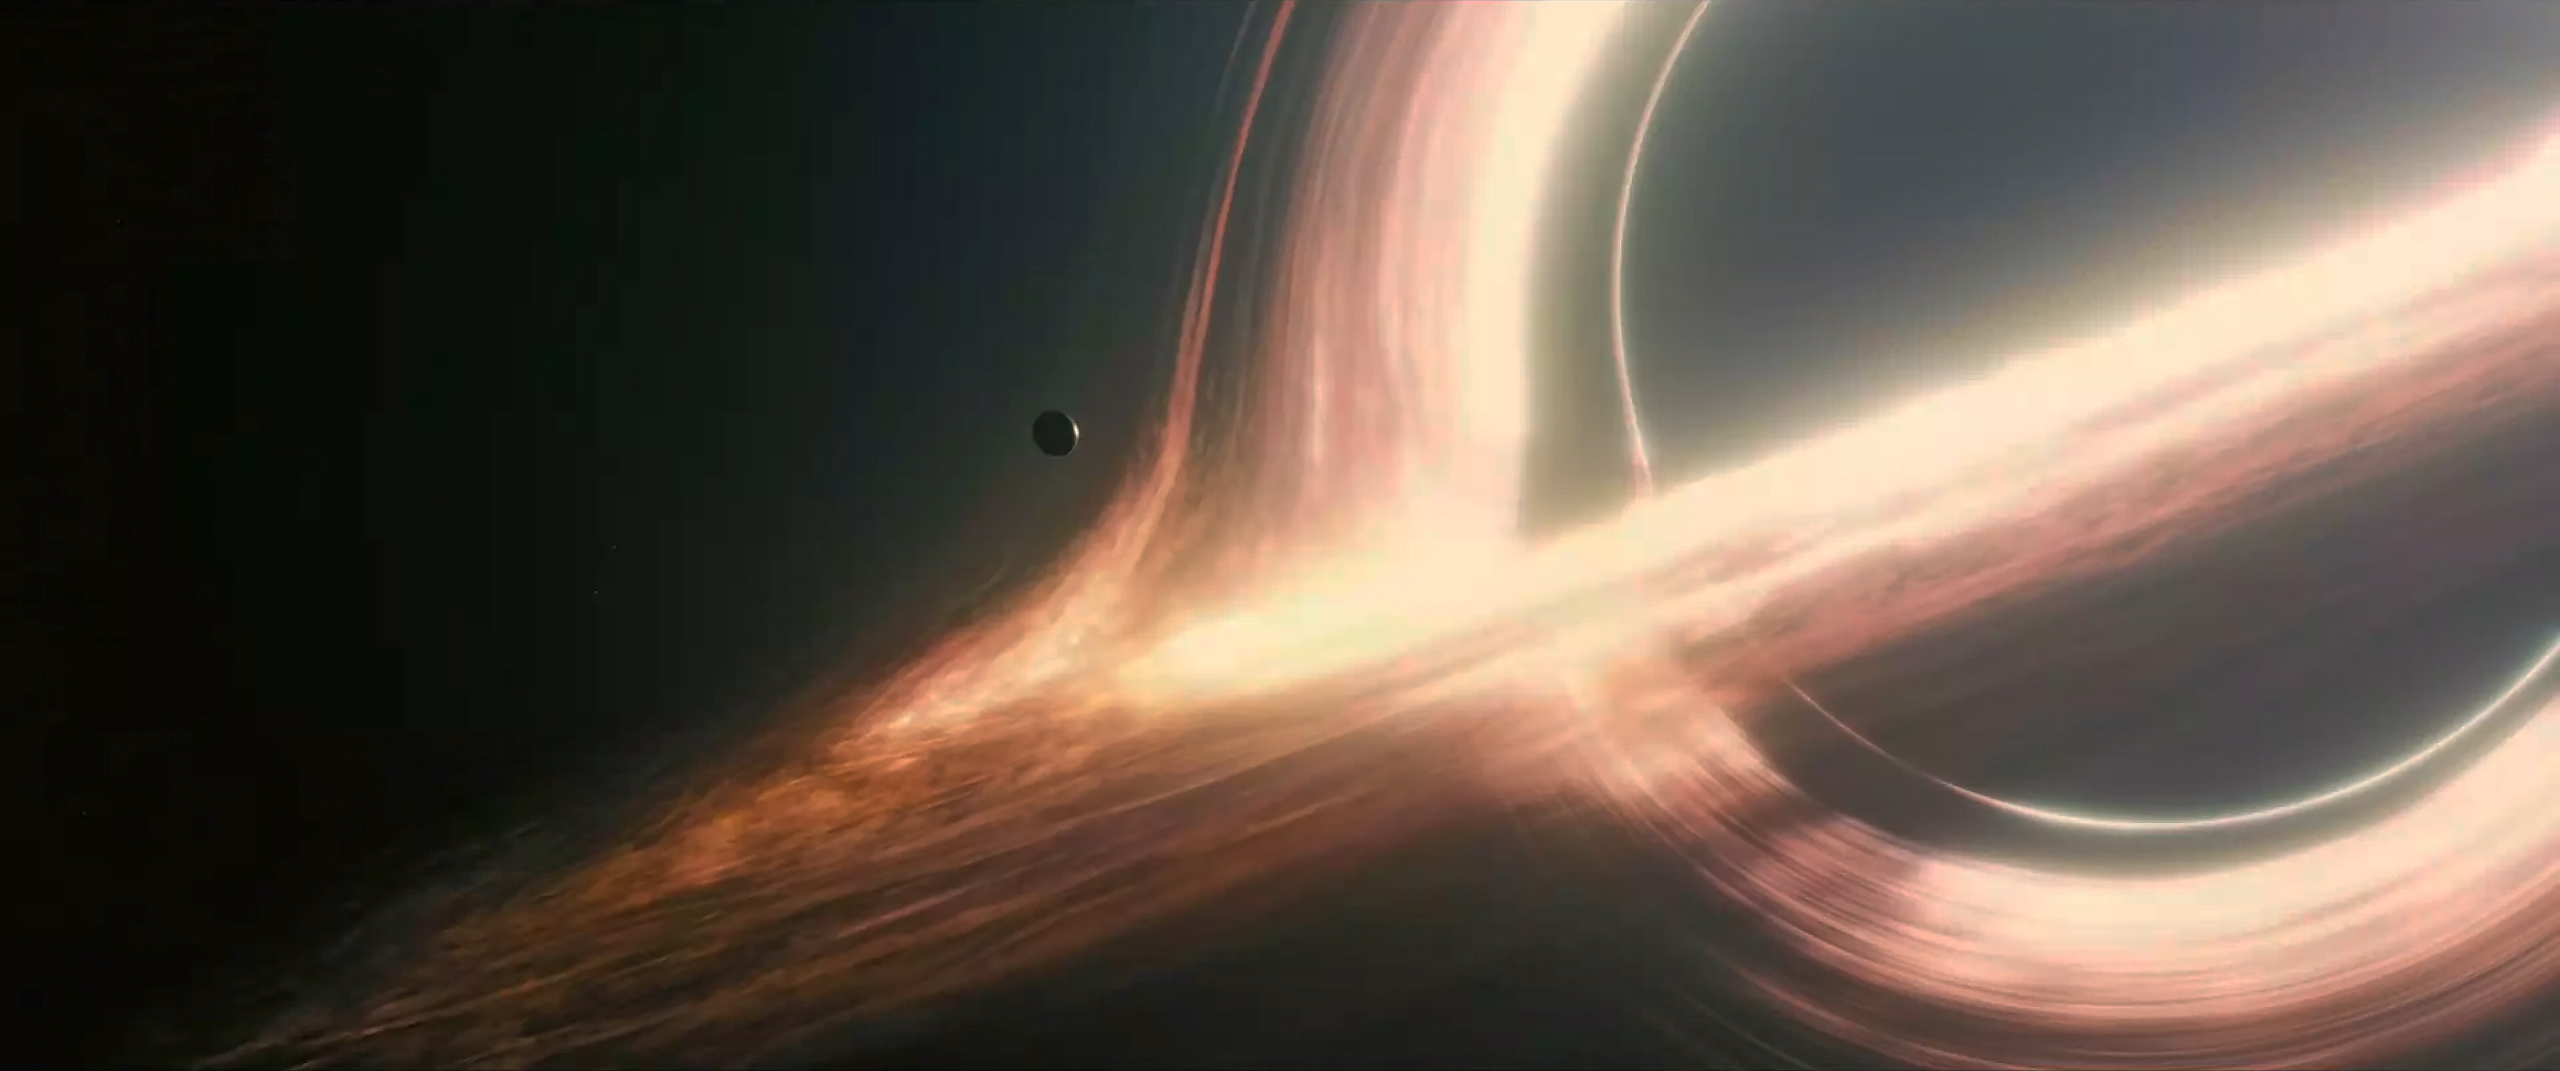 Interstellar Visual Effects Team Publishes Black Hole Study